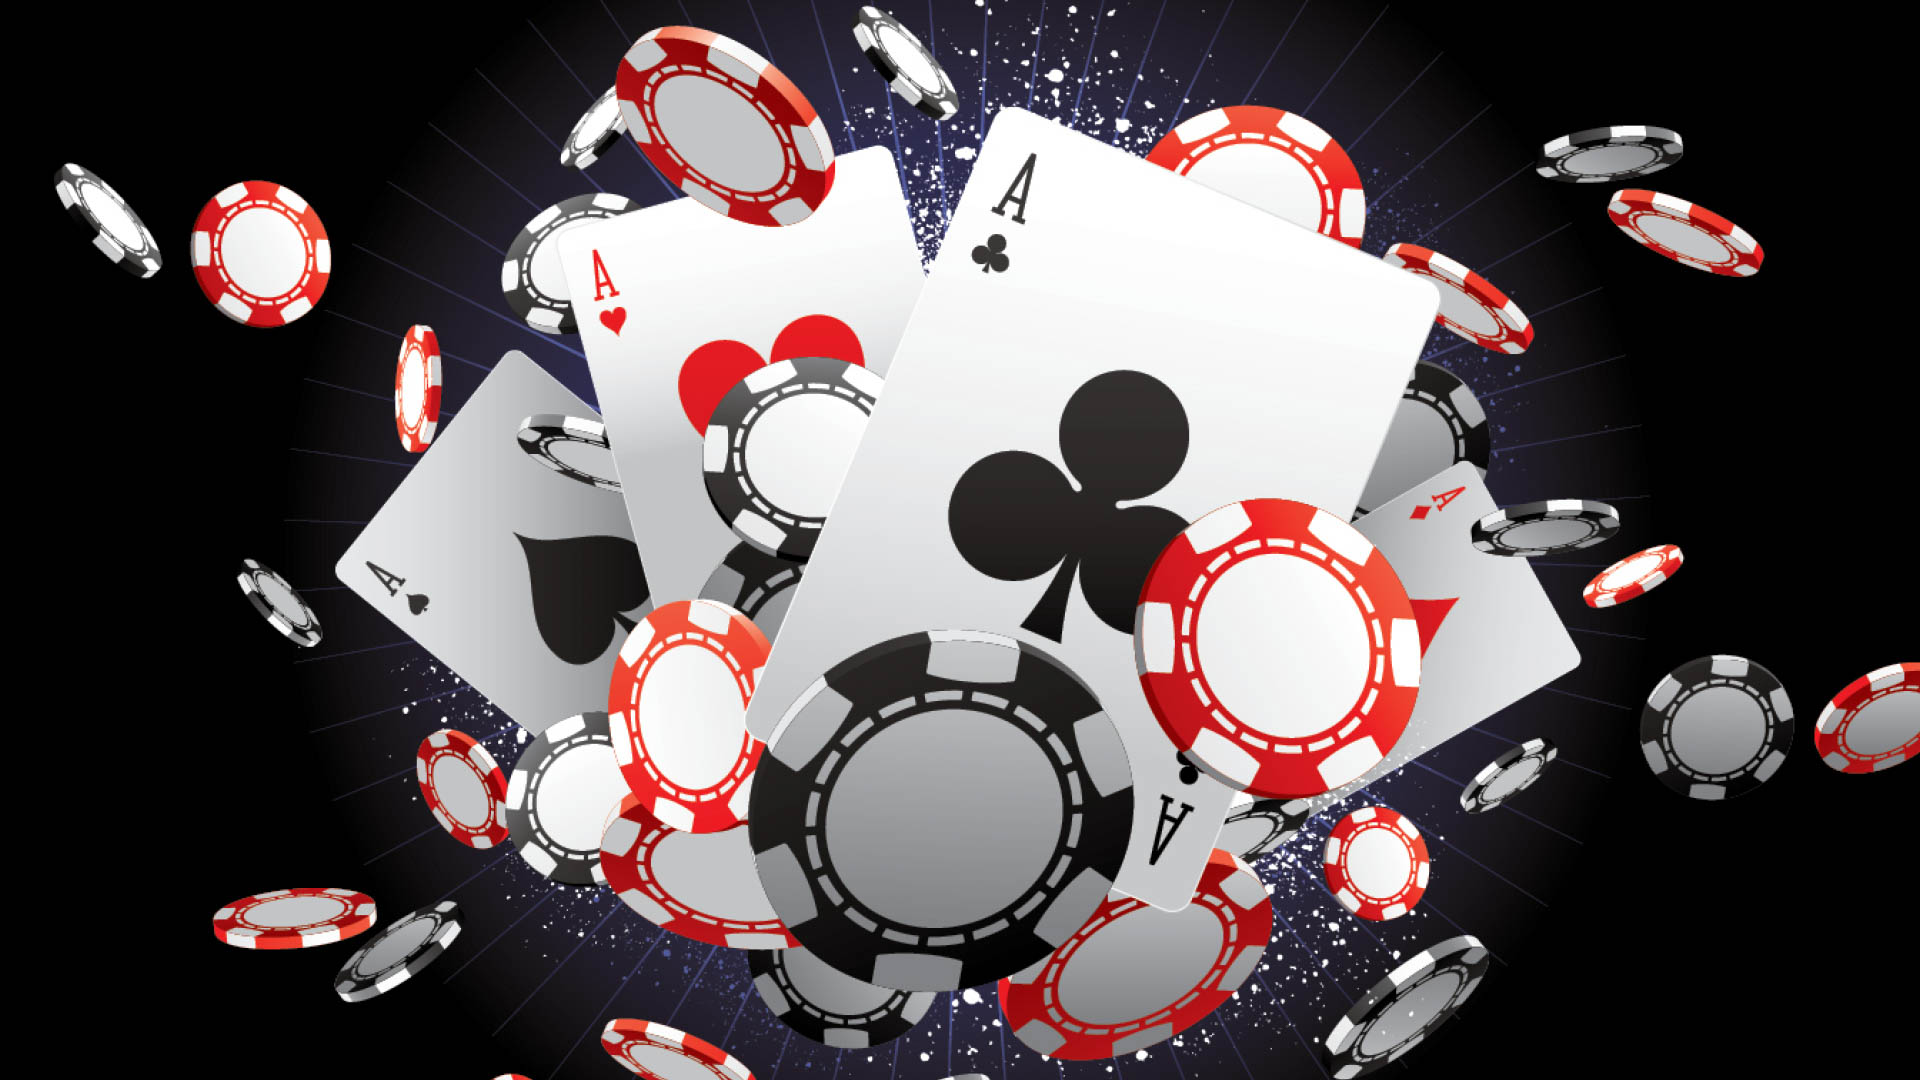 Level-Up Your Gaming Experience, Download This Extravagant Casino App